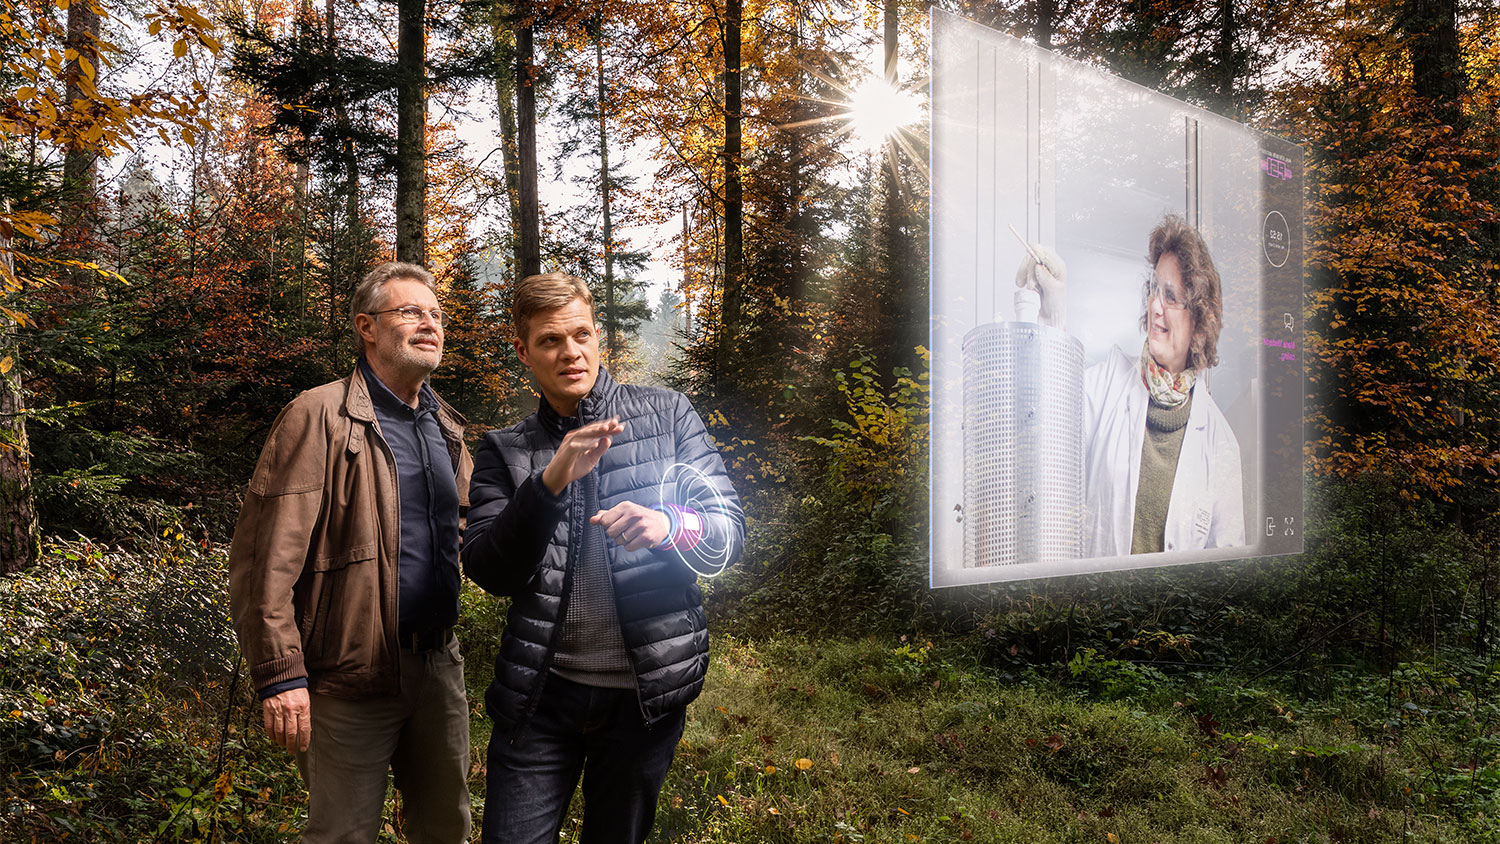 """Hans Sigg, Jonathan White and Marisa Medarde (from left) </br> (Photo: Scanderbeg Sauer Photography, 3d-object and visualisation: Incursion/Manuel Guédes)"""" width=""""380″ height=""""213″/></a><figcaption> Hans Sigg, Jonathan White and Marisa Medarde (from left)<br>(Photo: Scanderbeg Sauer Photography, 3d-object and visualisation: Incursion/Manuel Guédes) </figcaption></figure></div>    <p><strong>Marisa Medarde: Storage thanks to coupled properties</strong></p>    <p>Another current magic word is multiferroics. Marisa Medarde, head of the PSI research group for physical properties of materials, investigates these special compounds whose magnetic and electrical properties are coupled together. On multiferroics, magnetic data could easily be stored by means of electrical voltage. That would be faster and more energy-efficient than the magnetic write heads in use today.</p>    <p><strong>Frithjof Nolting: Switching bits with laser light</strong></p>    <p>Alternatively, also for this purpose you could use laser light.We have found out that you can also switch the magnetic bits with a laser pulse, says Frithjof Nolting, head of the laboratory for condensed matter at PSI. Here too the advantage would be faster storage with lower energy consumption. At the moment Nolting and his research group are trying to confirm or disprove theoretical predictions.When I began to get interested in magnetism, I really just wanted to do fundamental research and understand what's happening on this small magnetic scale, says the nanoscientist:However, our research could now contribute to further improvements in hard drives.<br></p> </div> </div> <div class="""